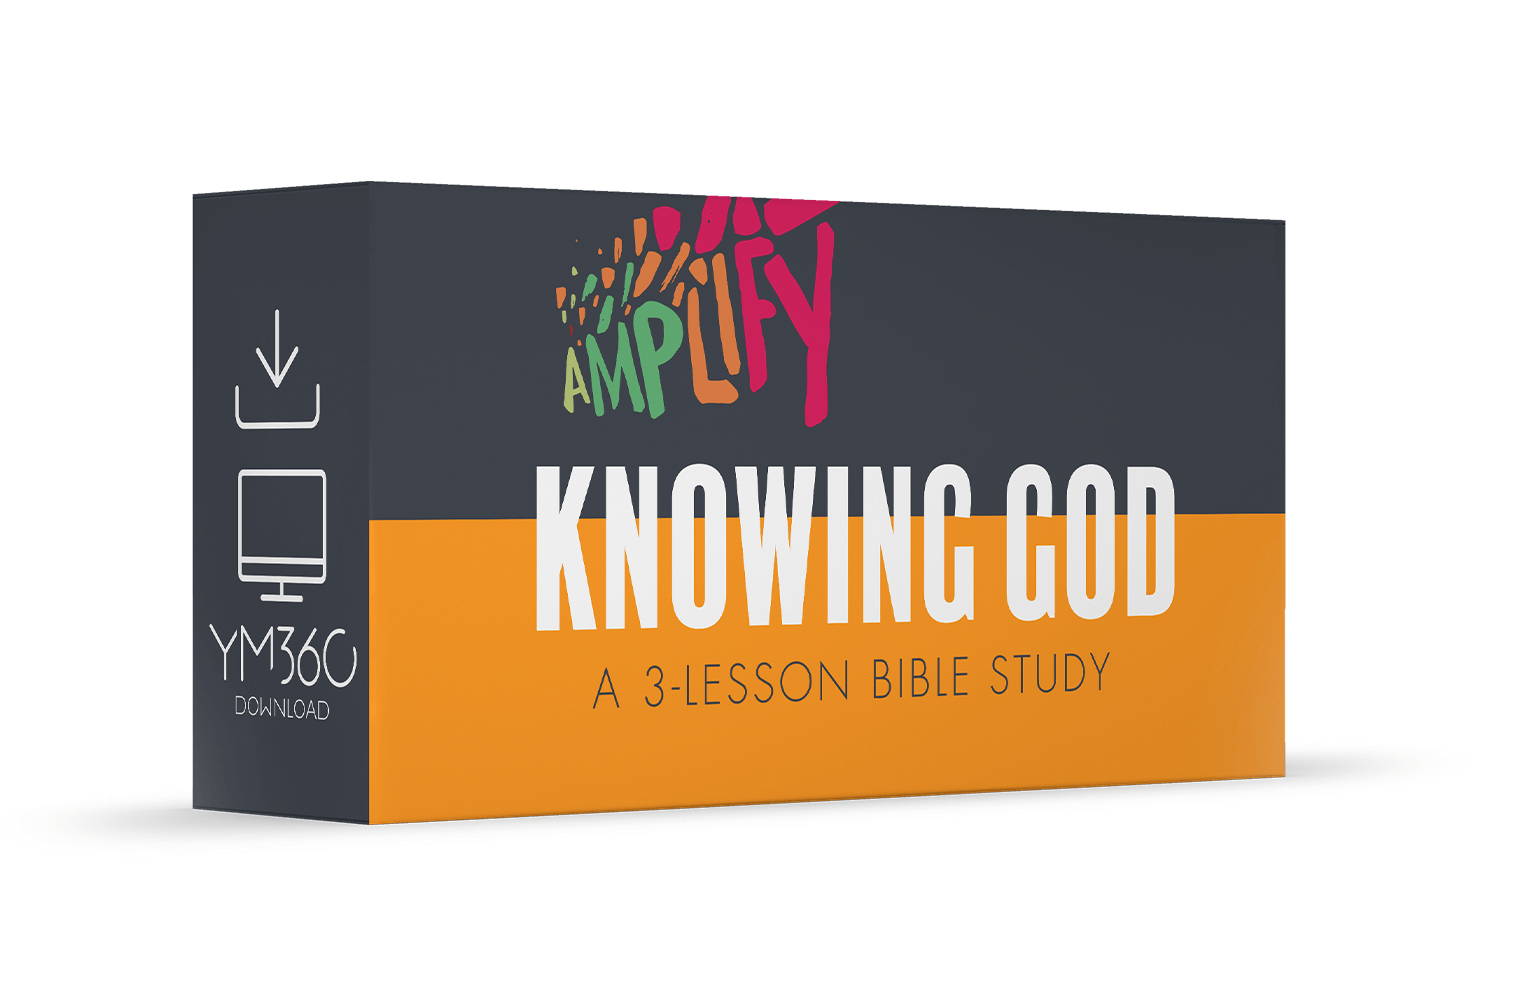 Knowing God: A 3-Lesson Bible Study